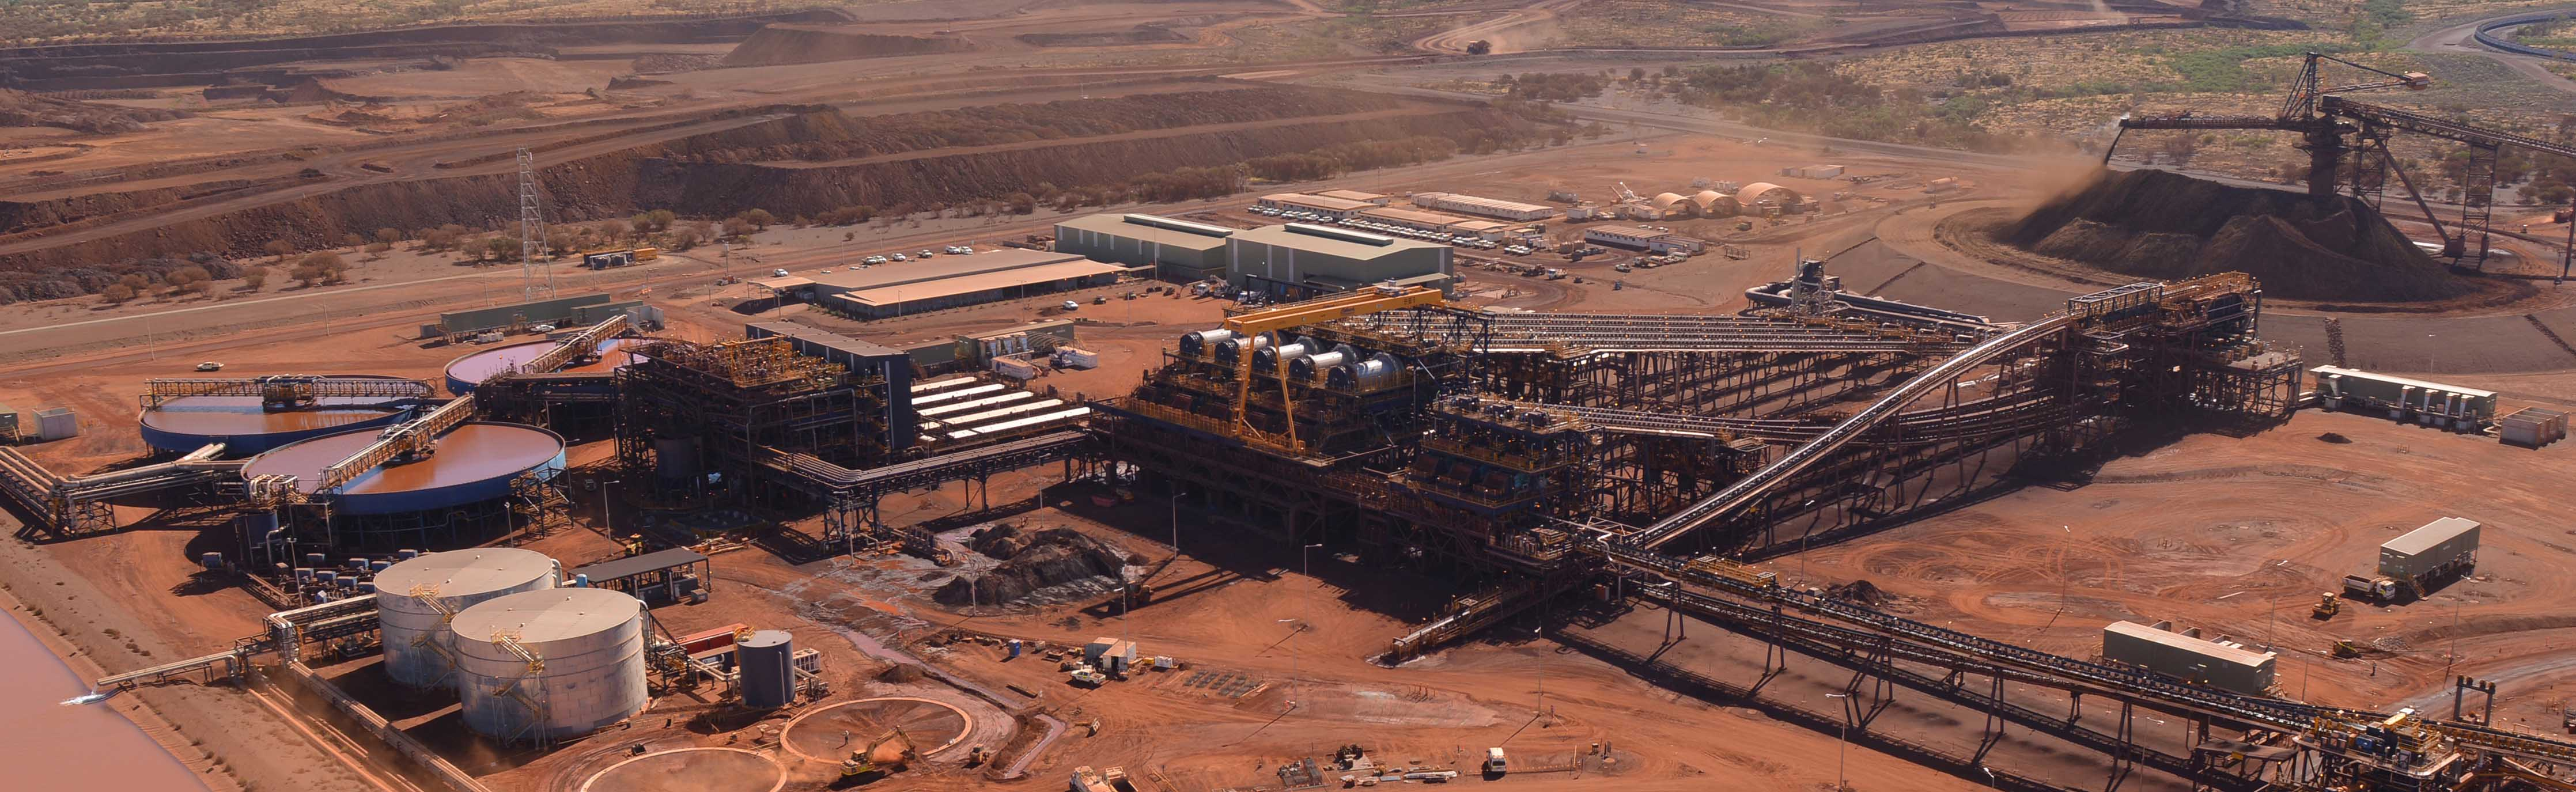 Mining Coordinator Production FIFO Mine Processing Plant Australia